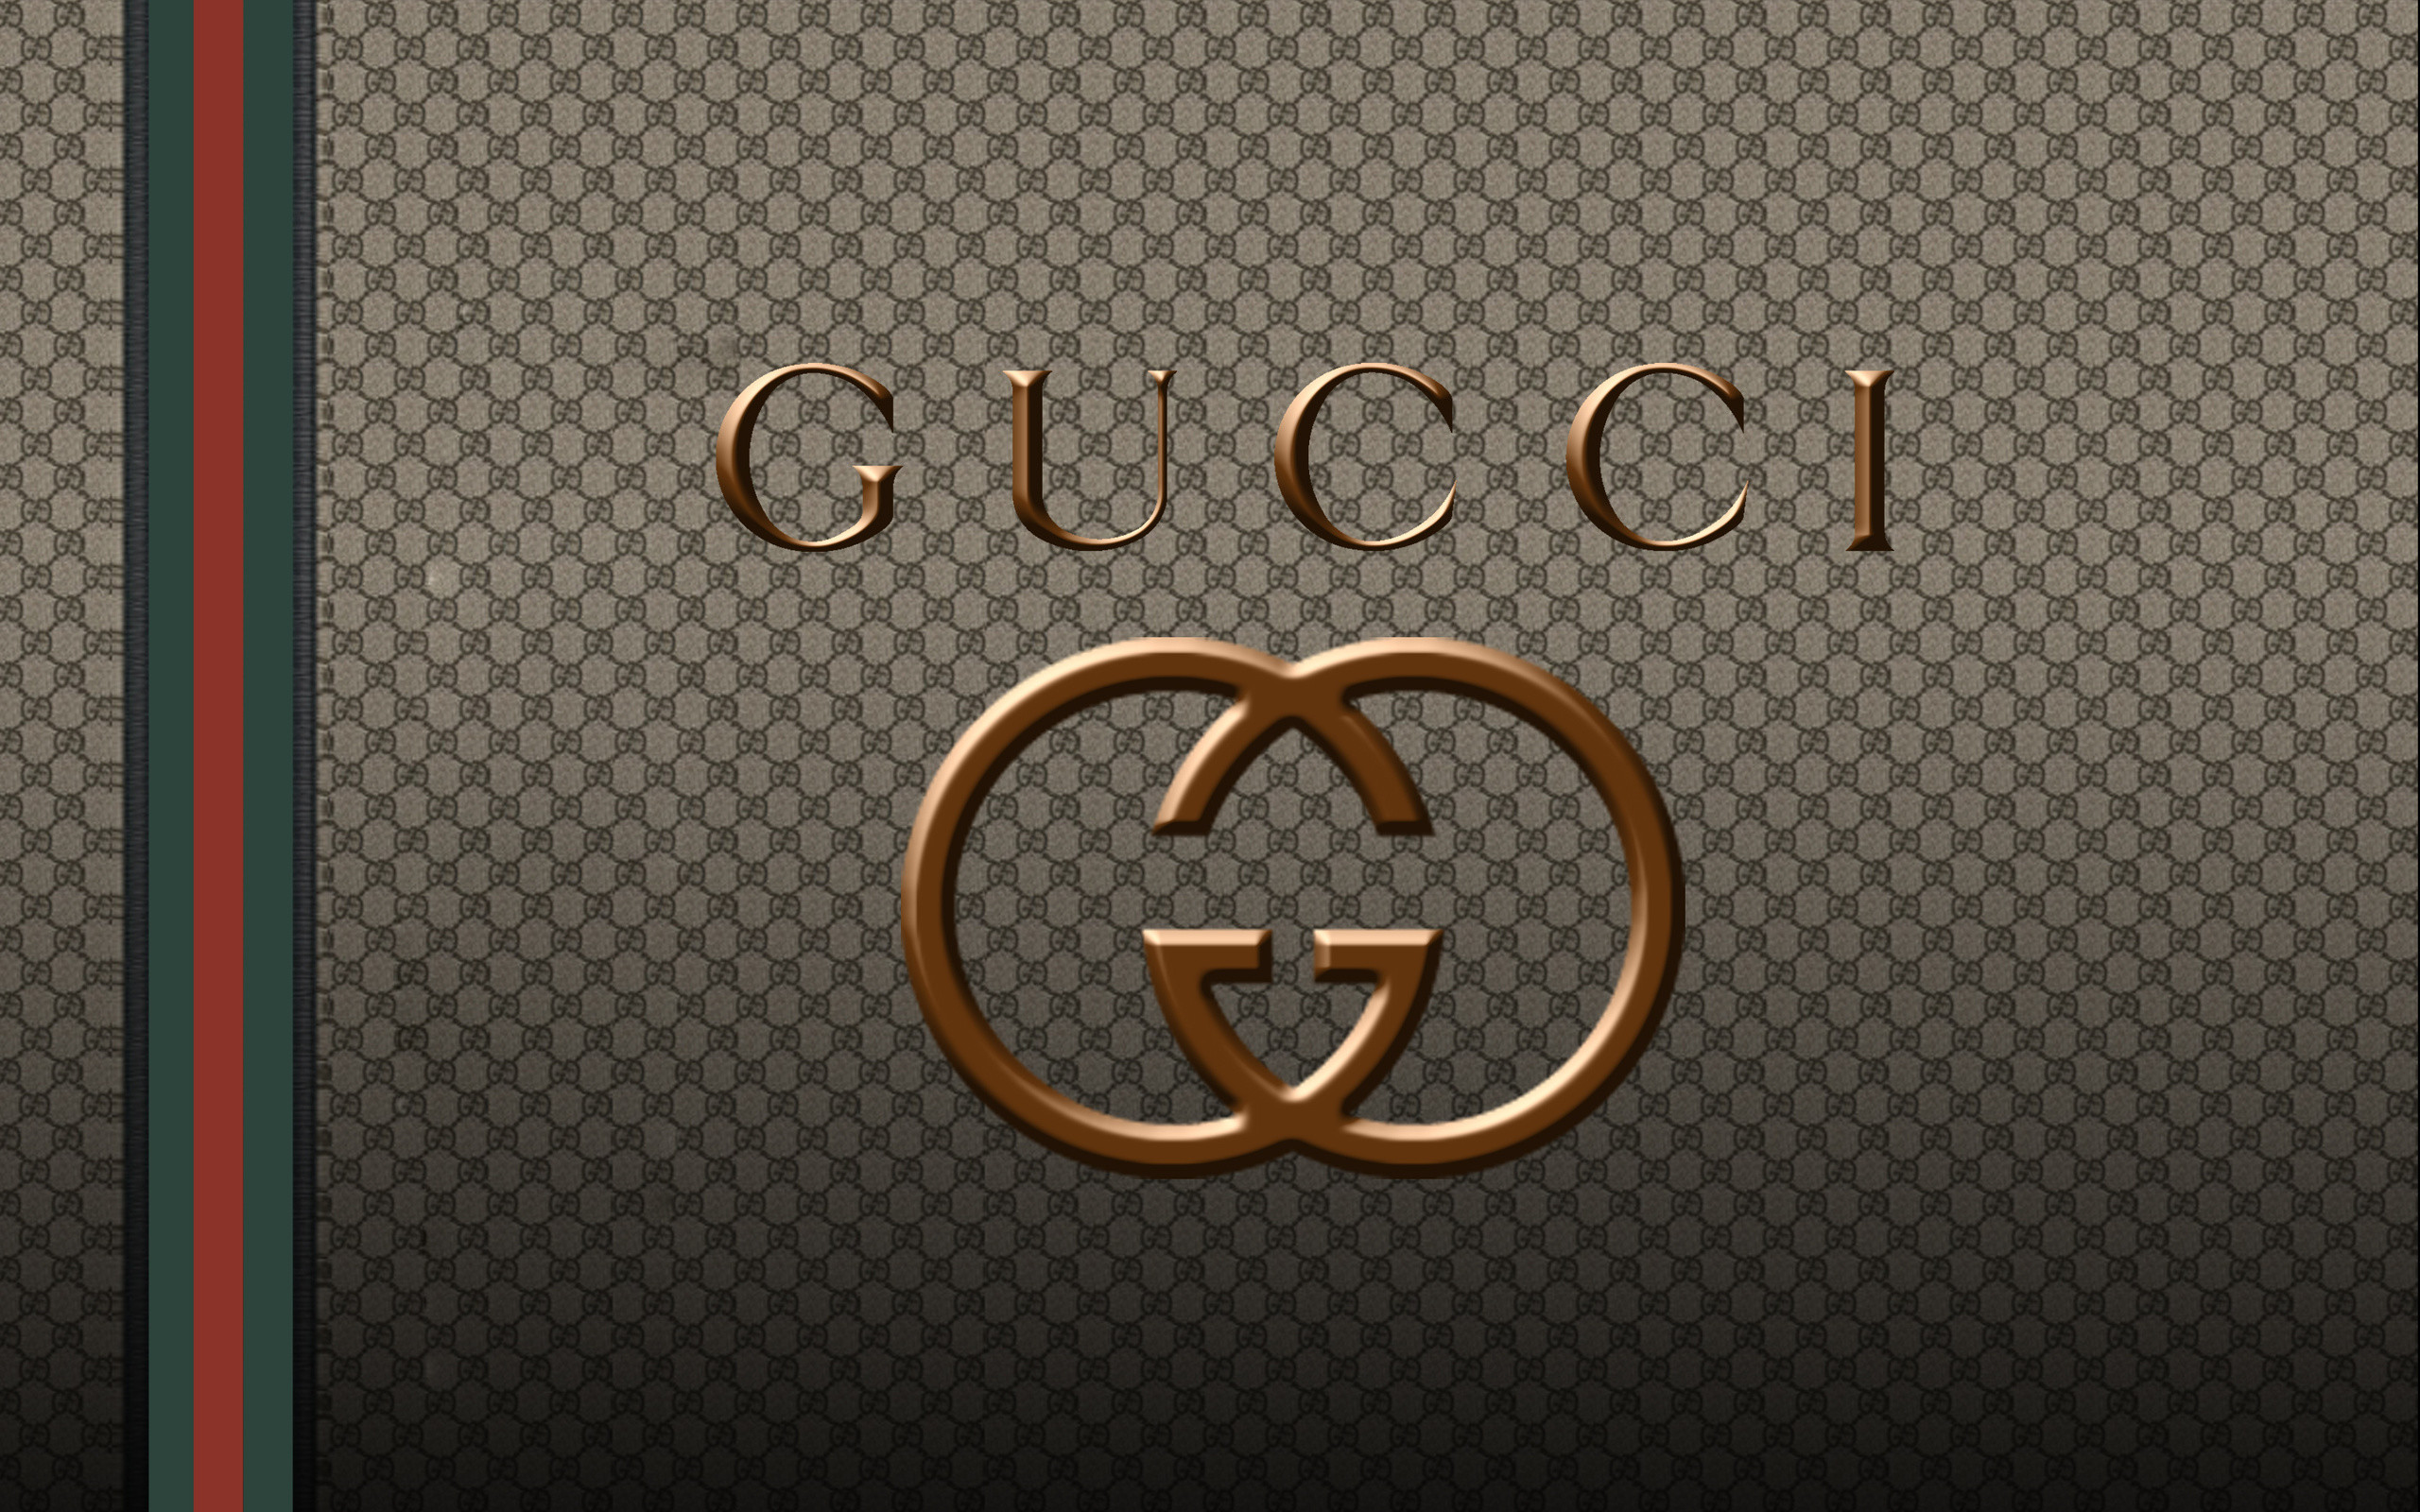 Gucci Named Top Brand in Study of Social Media Influencers. Gucci-HD- Wallpaper